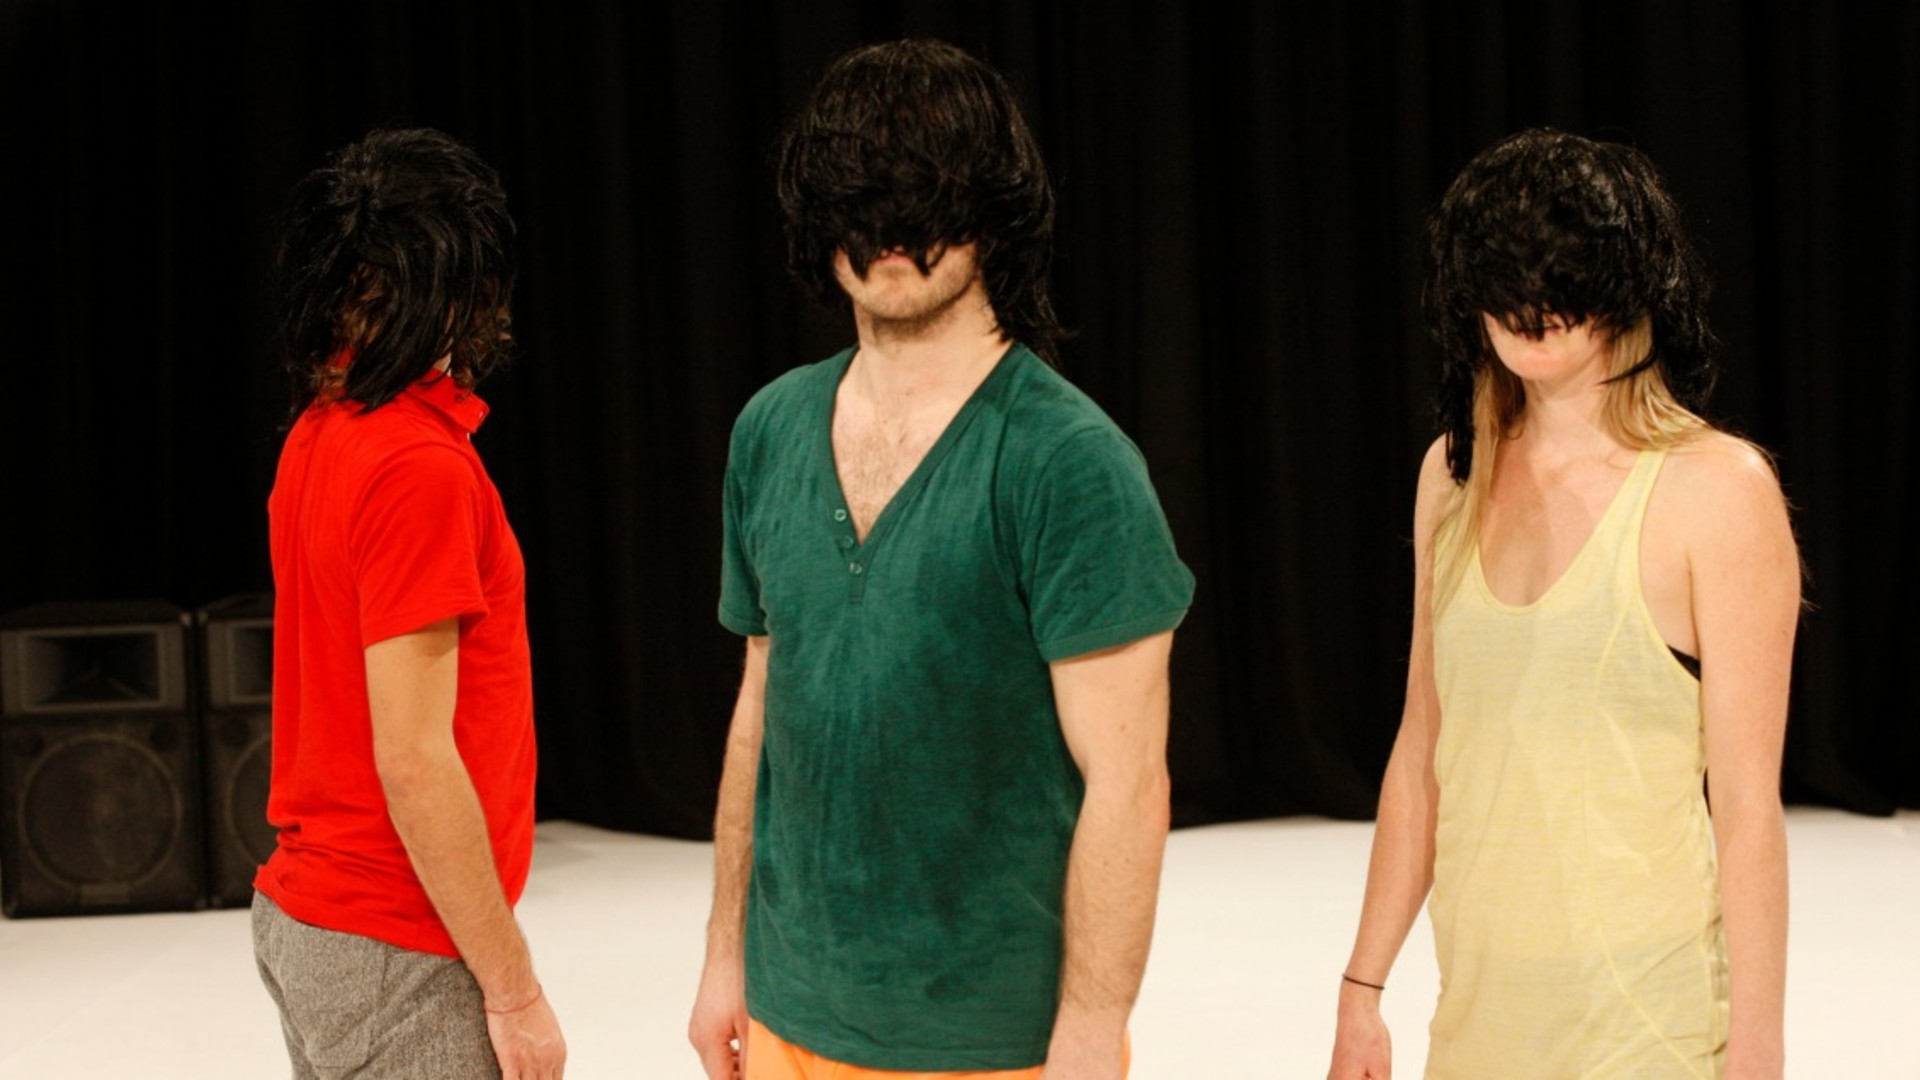 A close up of three dancers standing closely together with bright tops and wearing dark wigs which cover their faces